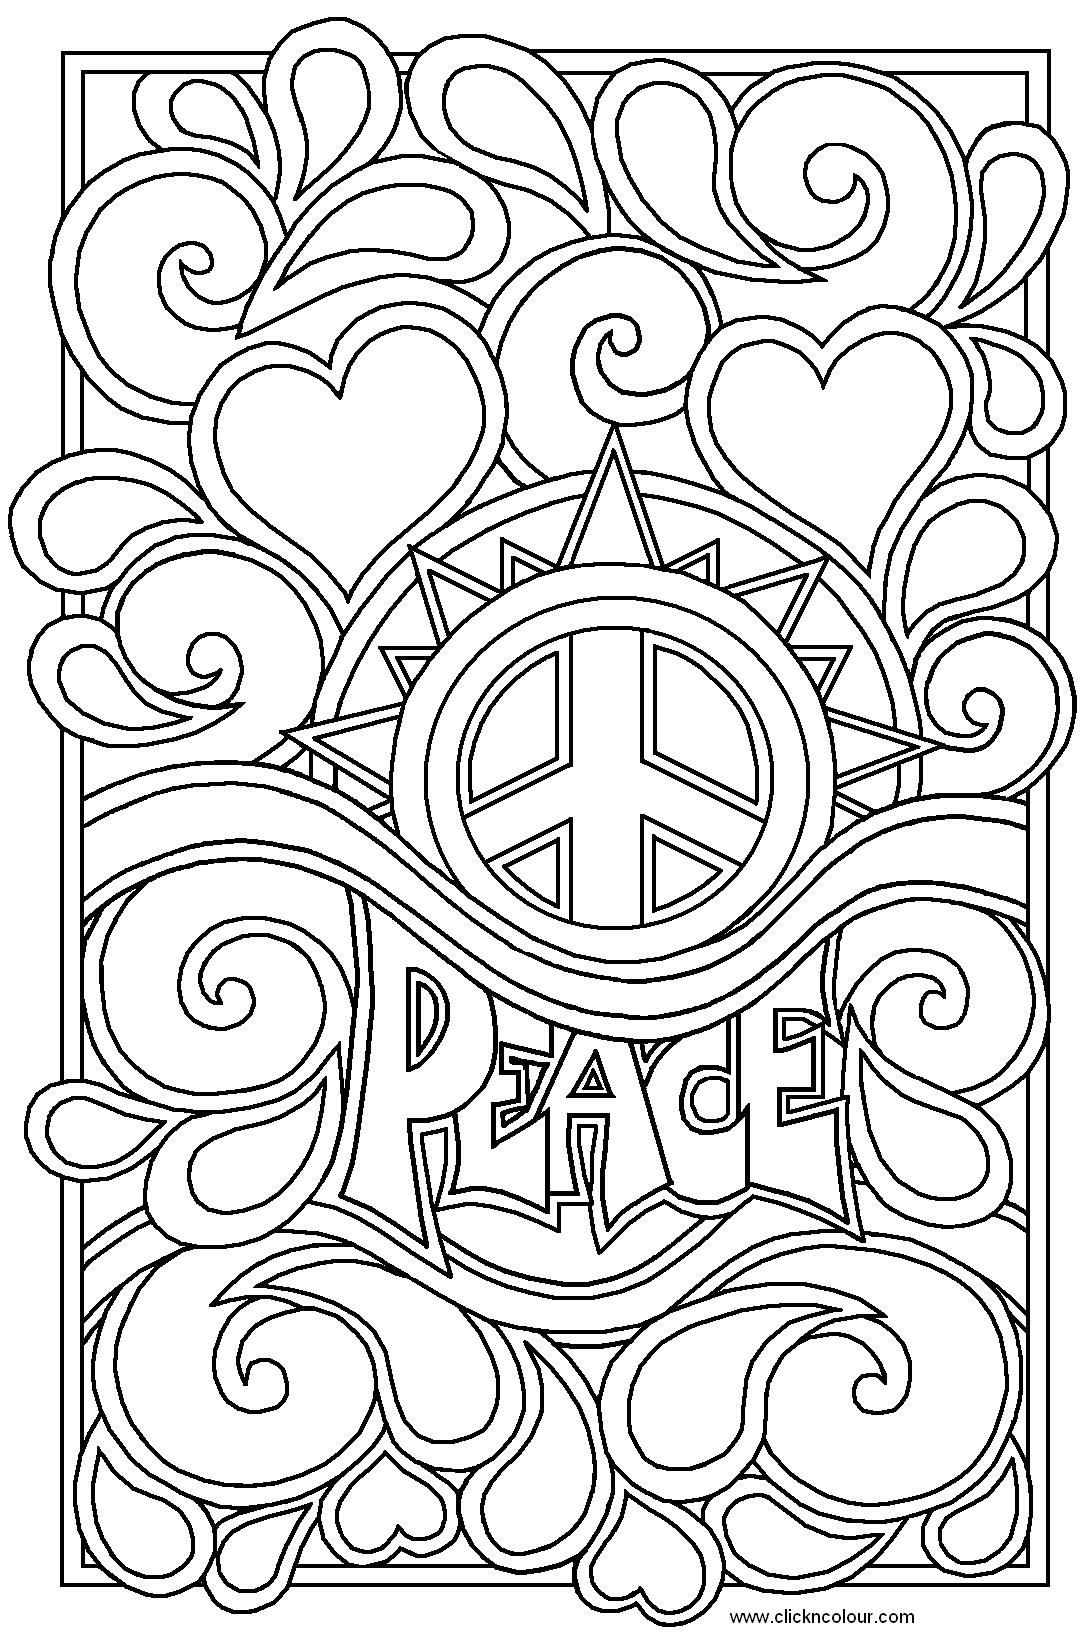 coloring sign infinity sign coloring pages at getcoloringscom free sign coloring